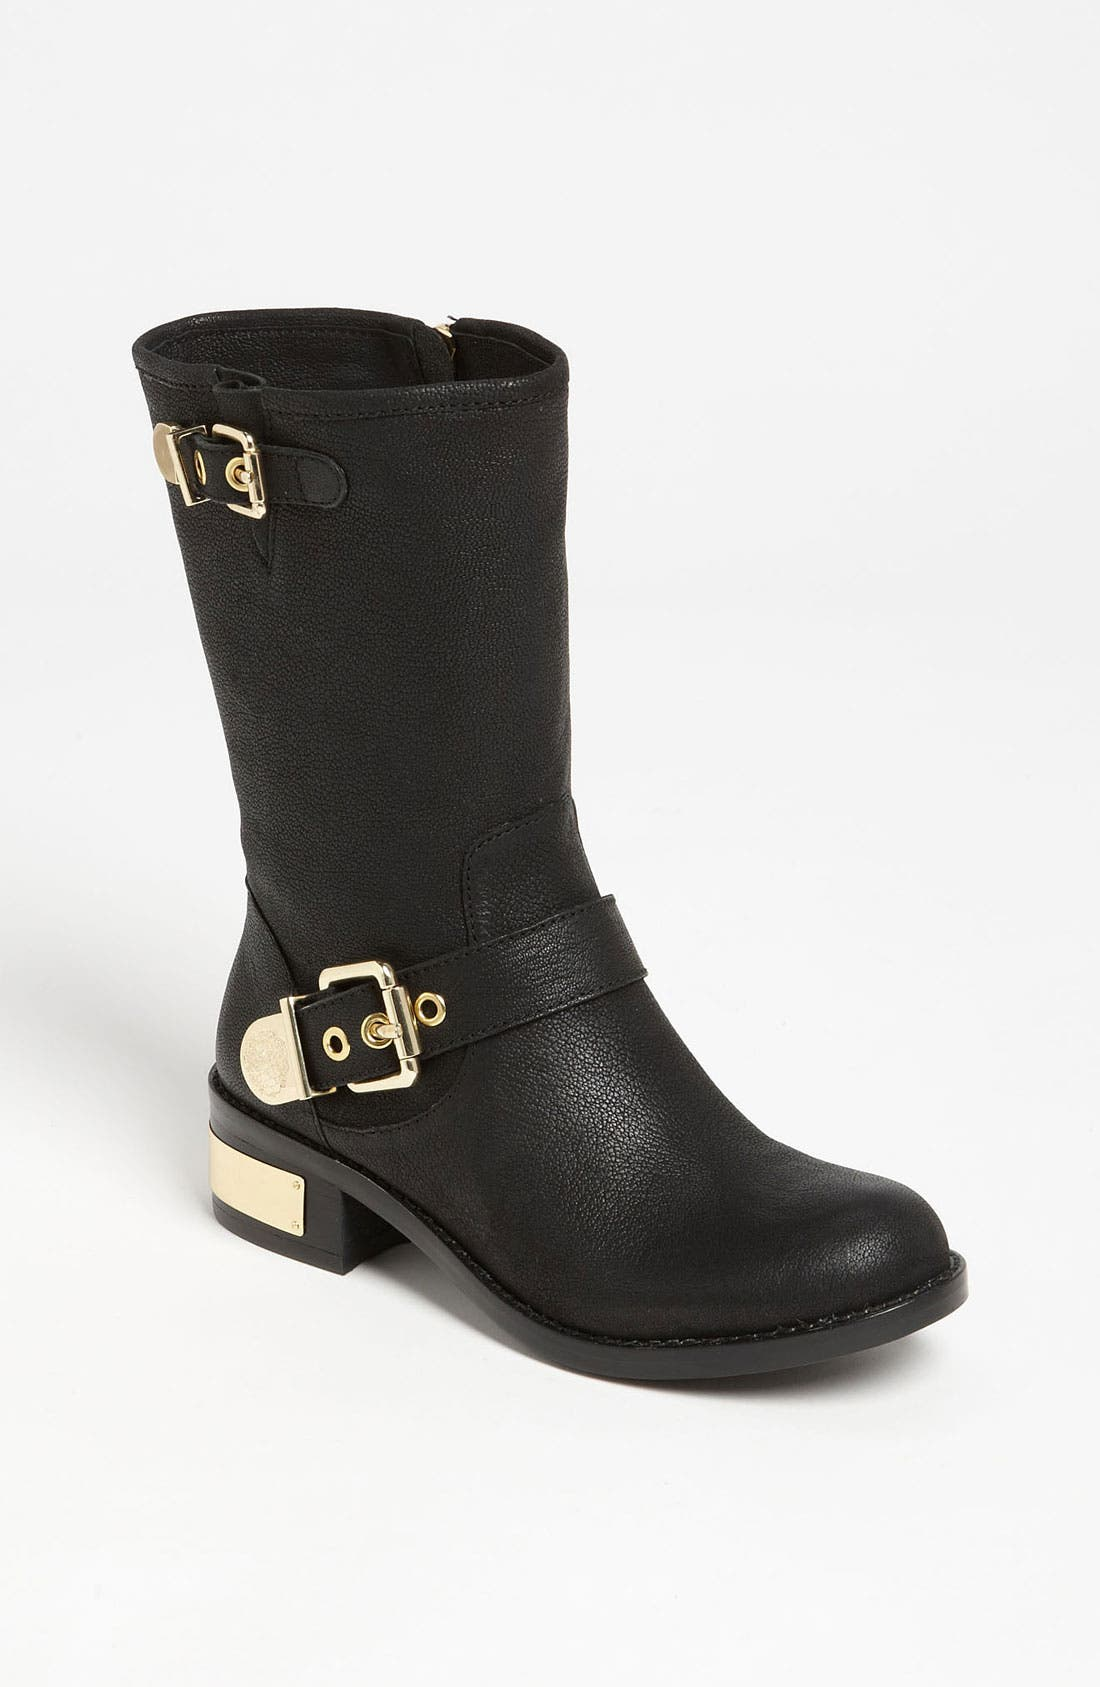 Alternate Image 1 Selected - Vince Camuto 'Winchell' boot